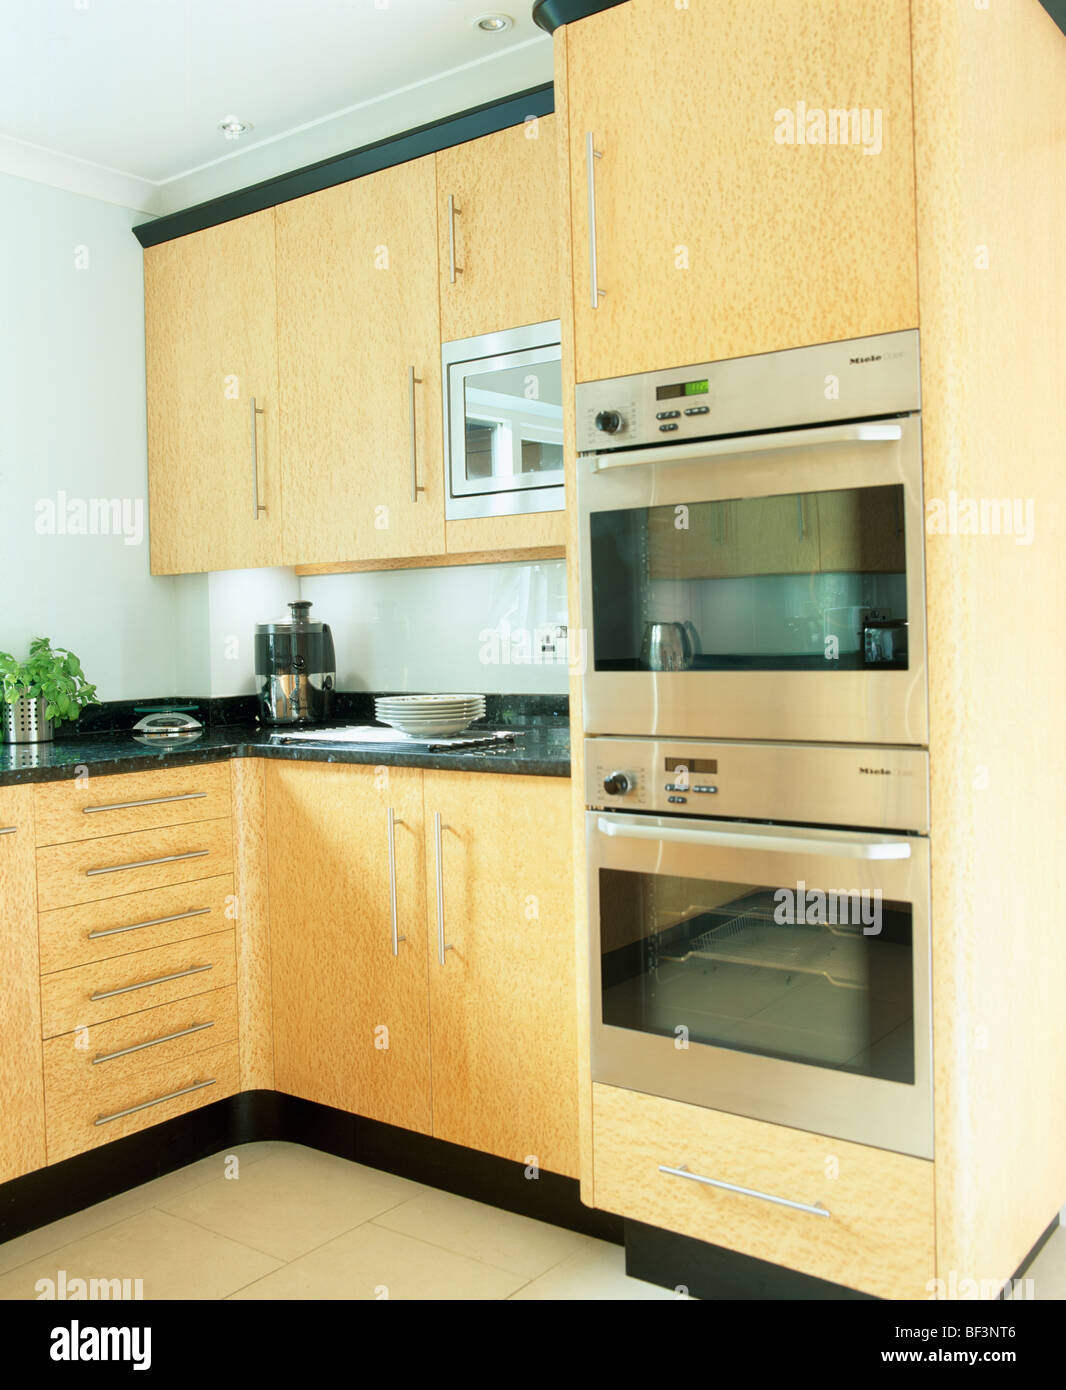 Eye Level Double Oven In Modern Kitchen With Pale Wood